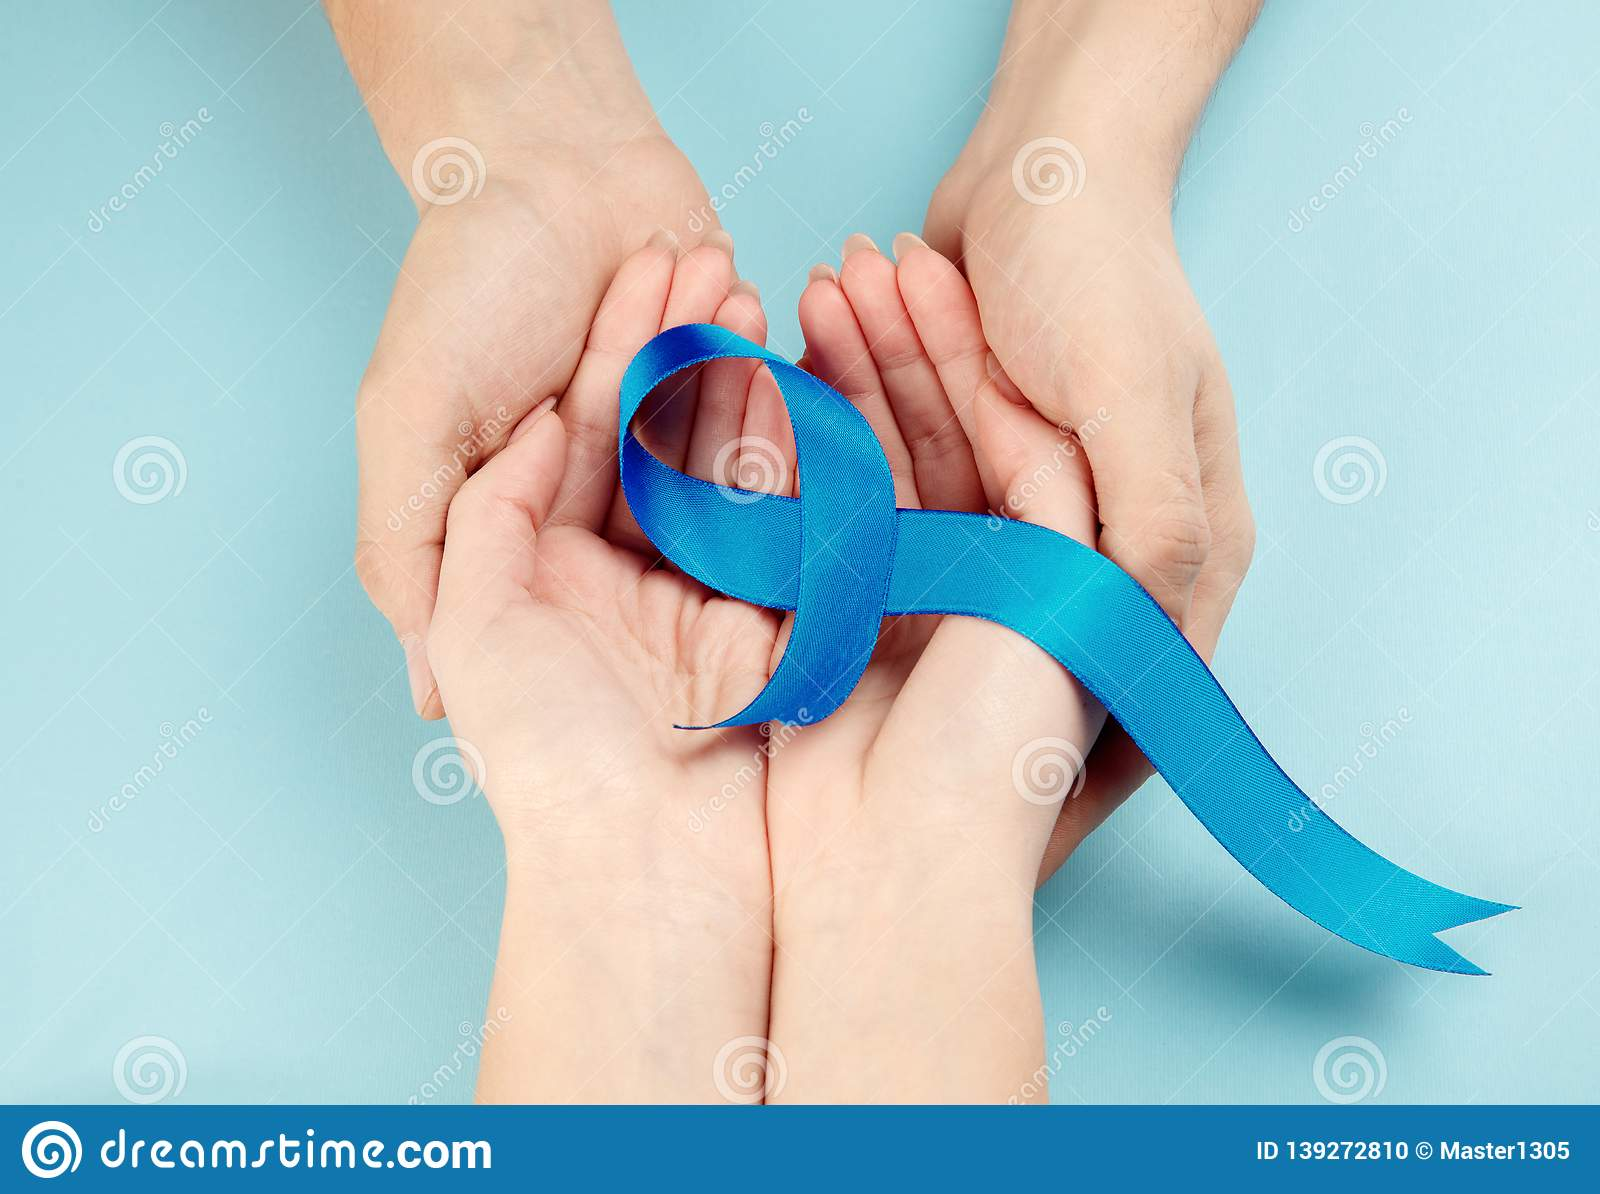 Blue ribbon symbolic of prostate cancer awareness campaign and men`s health in November